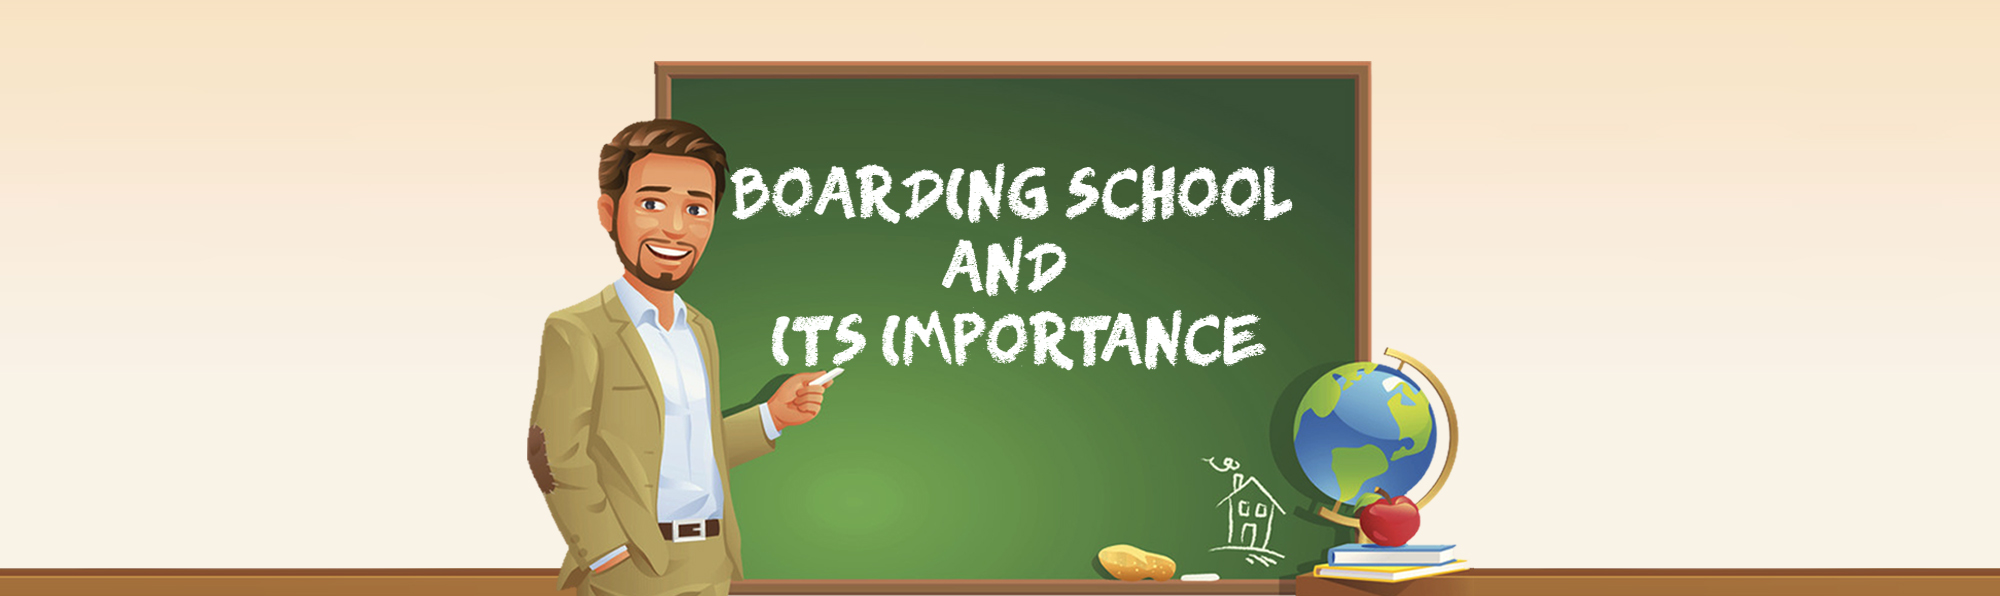 Boarding school and its importance